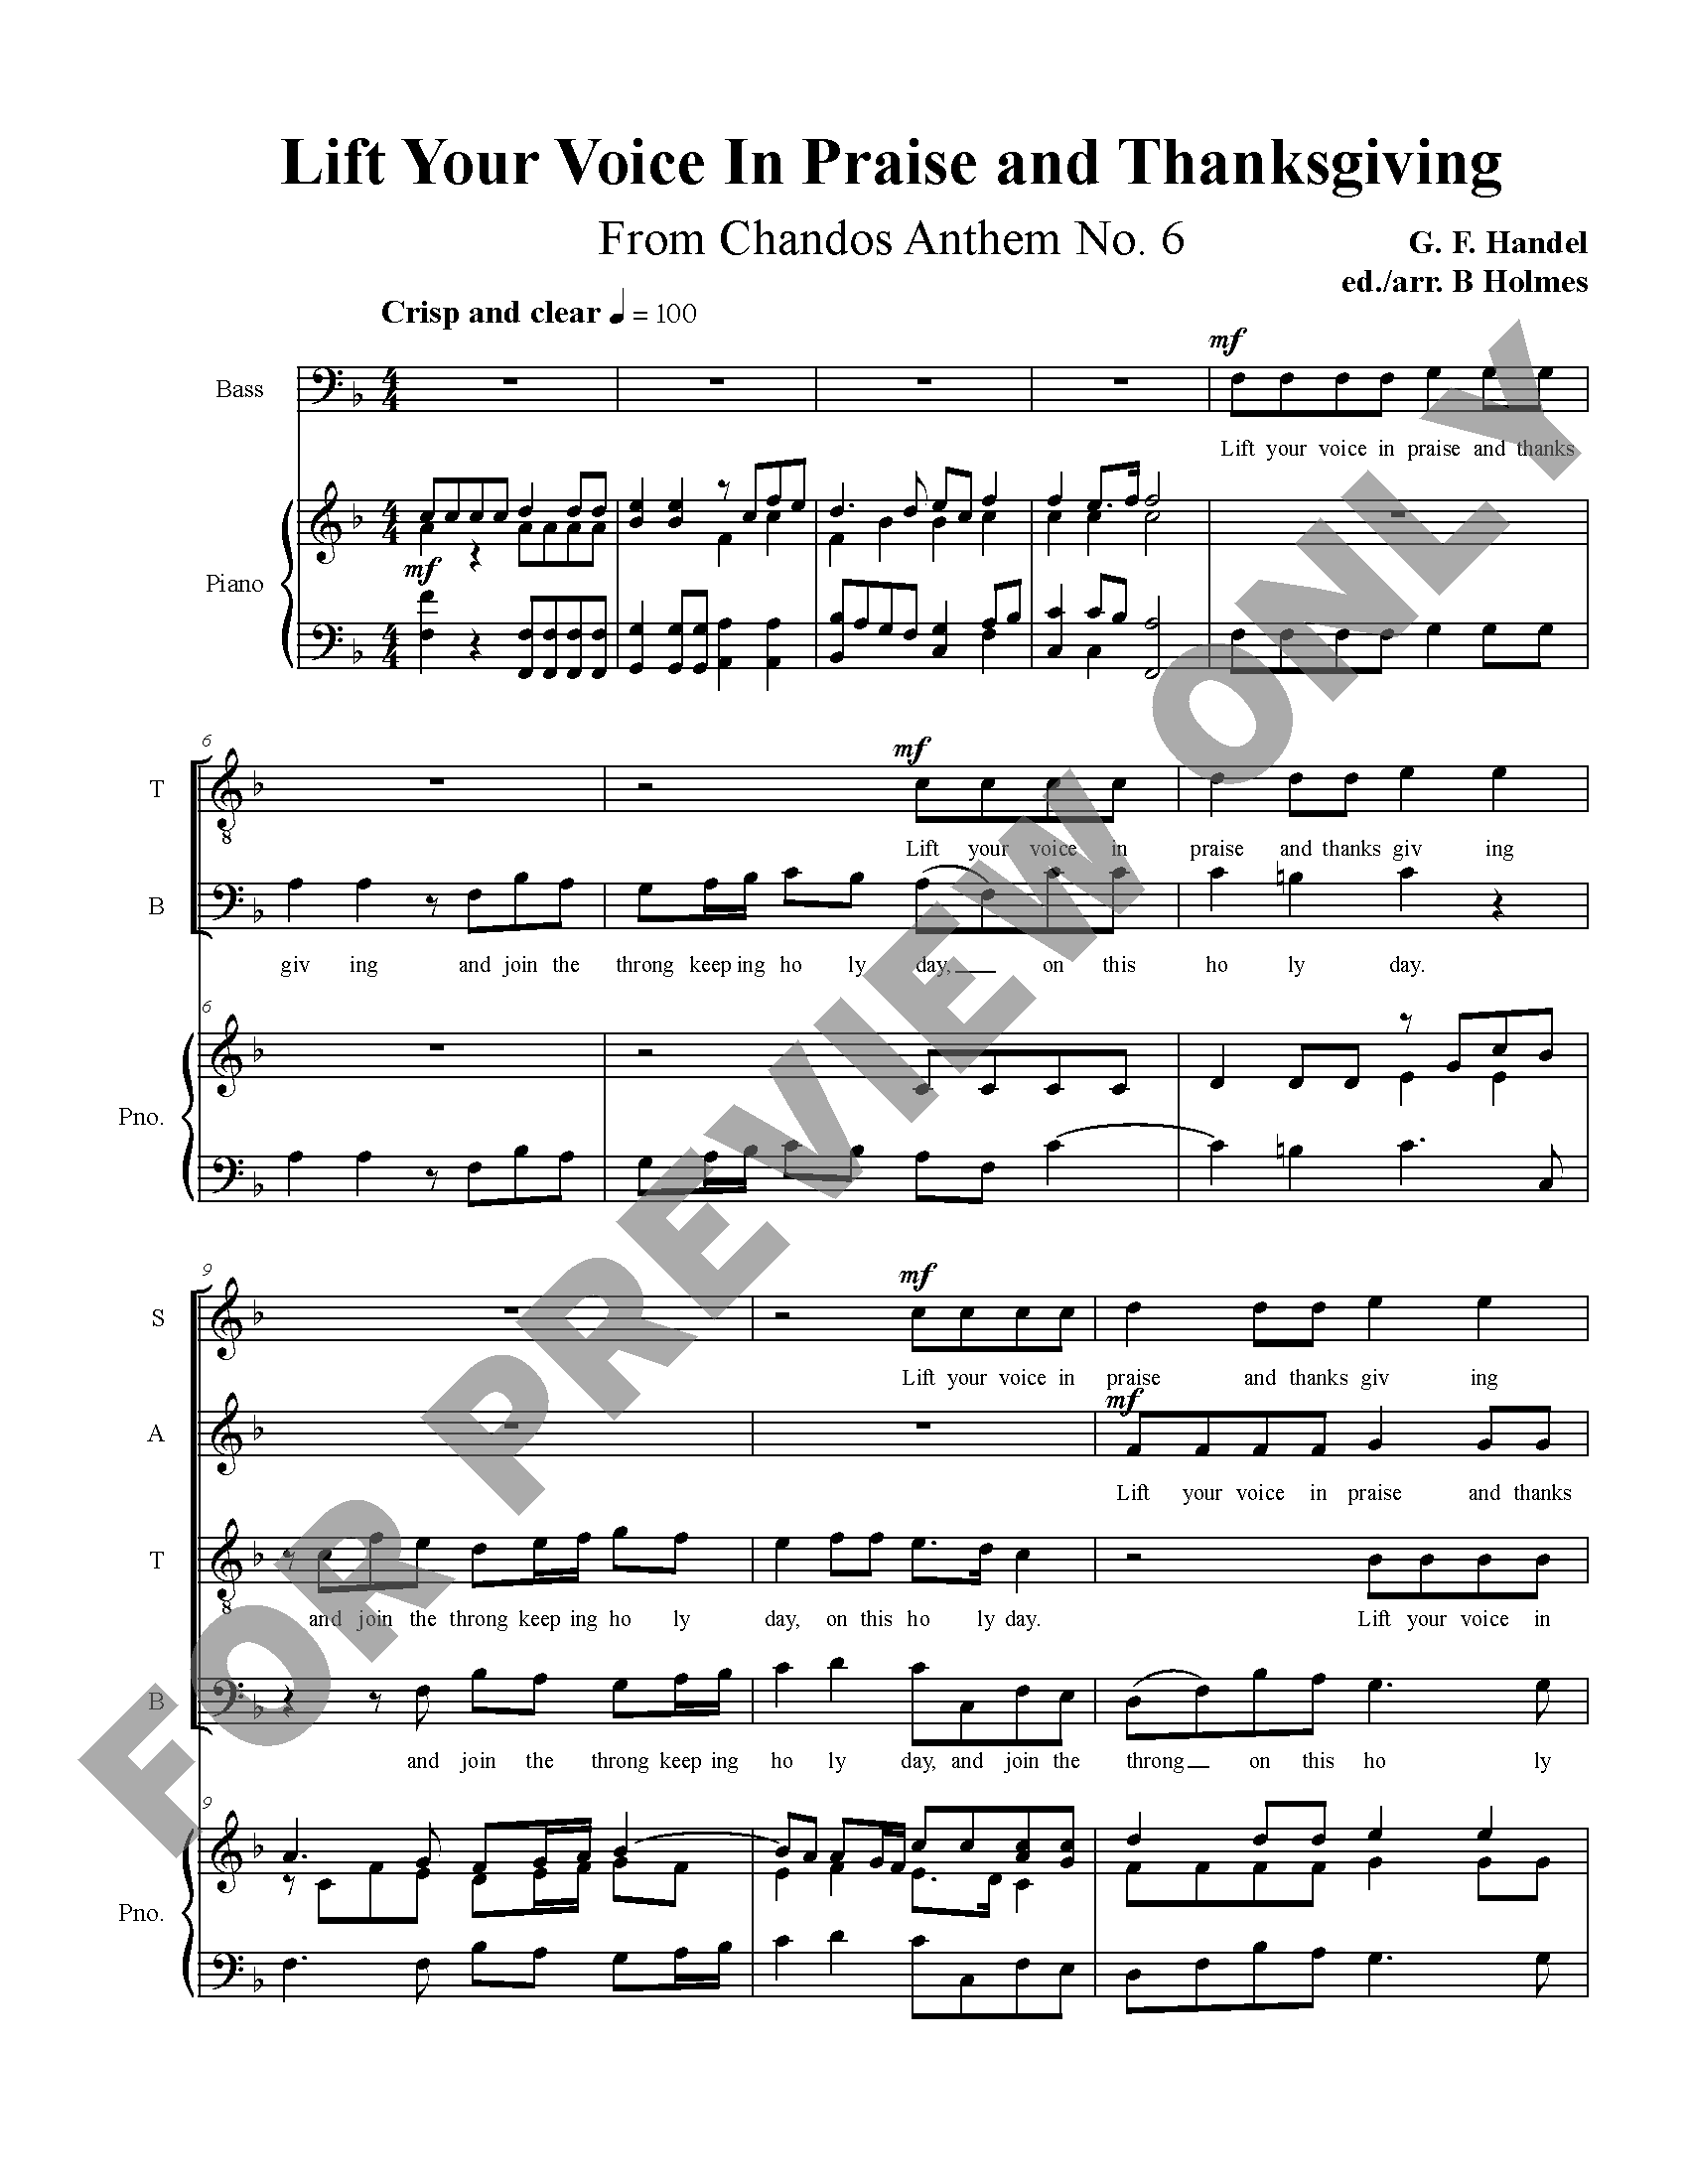 lift-your-voice_perusal_Page_1